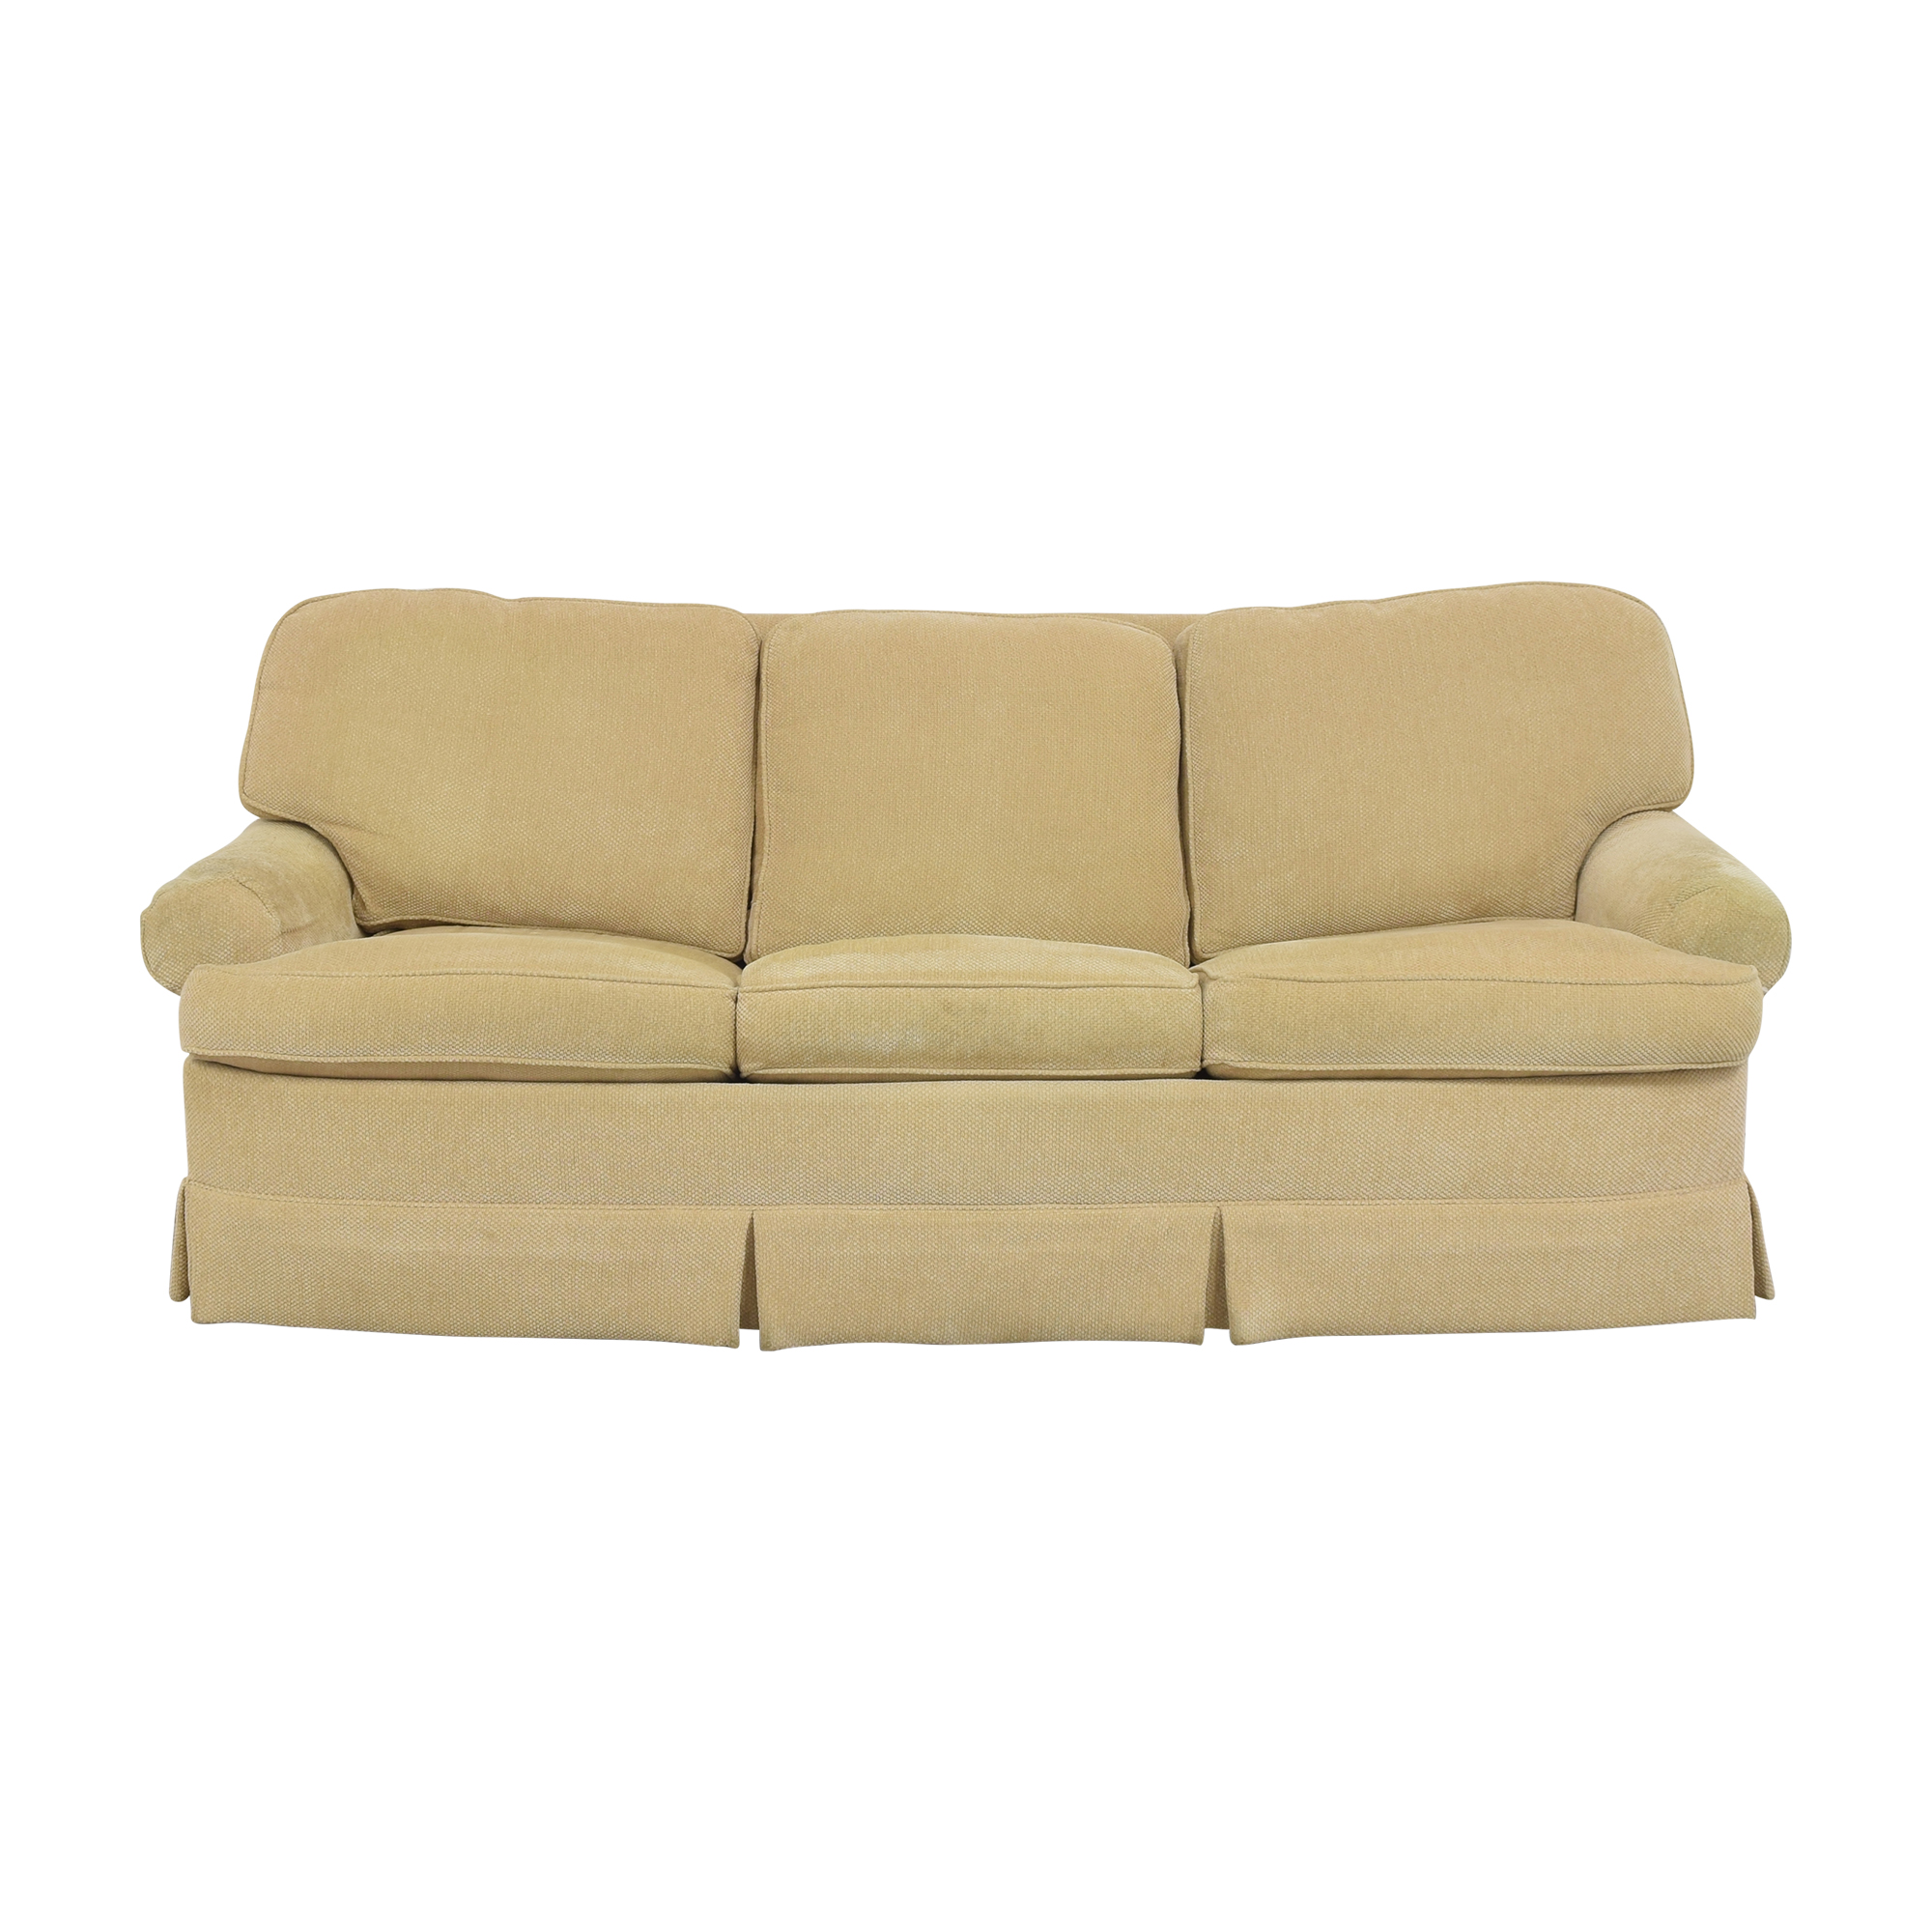 Ralph Lauren Home Ralph Lauren Roll Arm Sleeper Sofa YELLOW